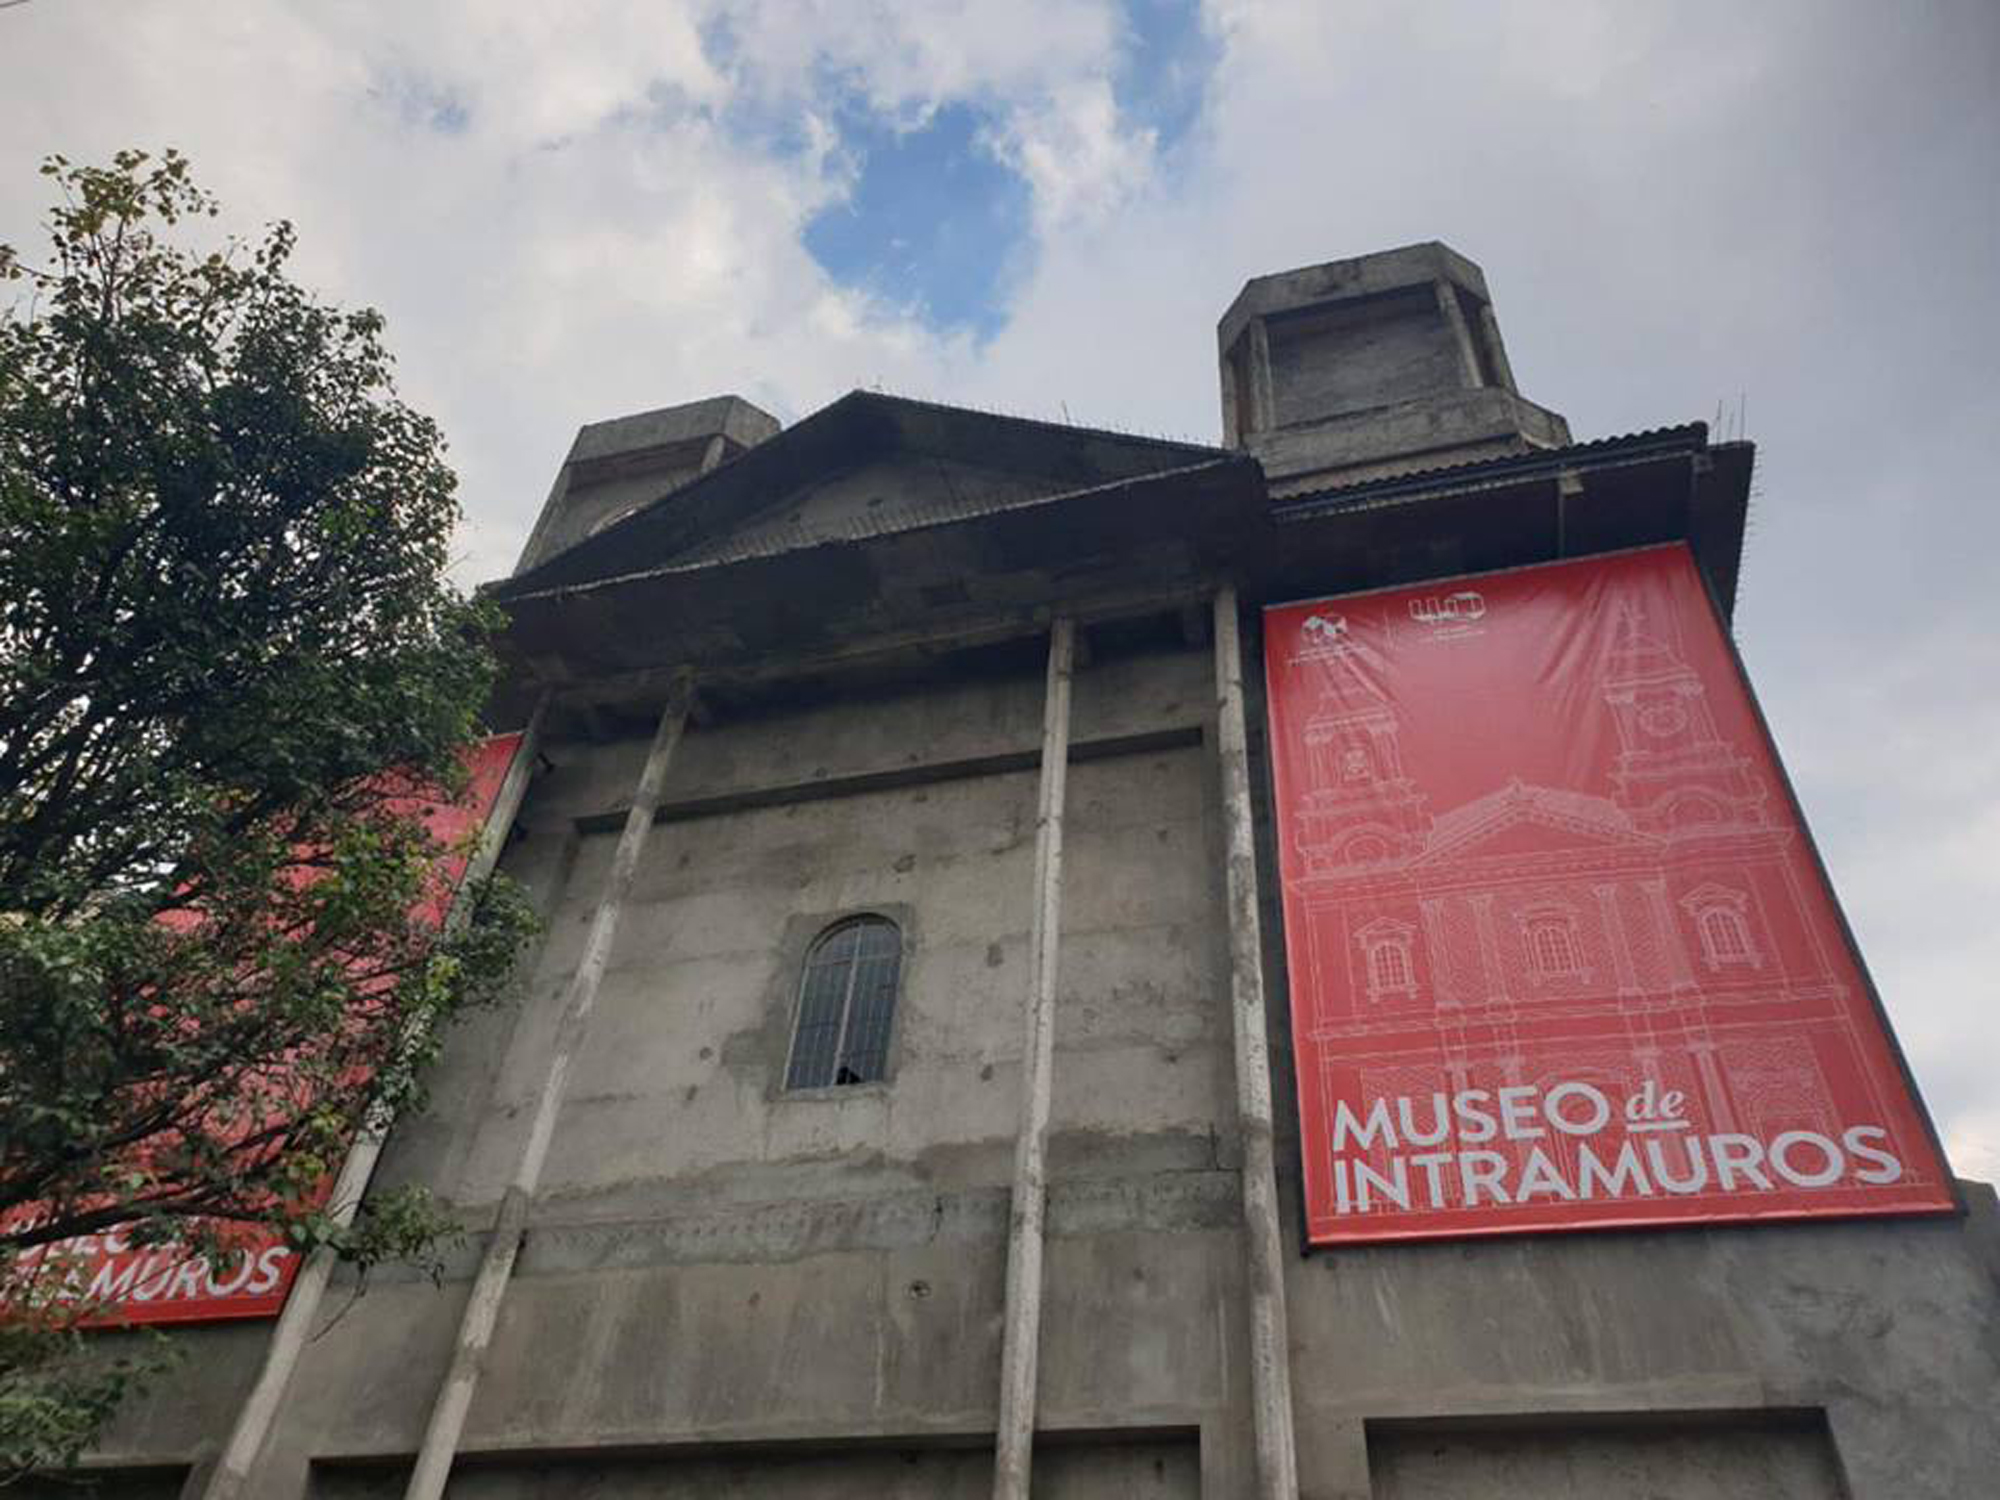 Travel and learn with ikotMNL on International Museum Day